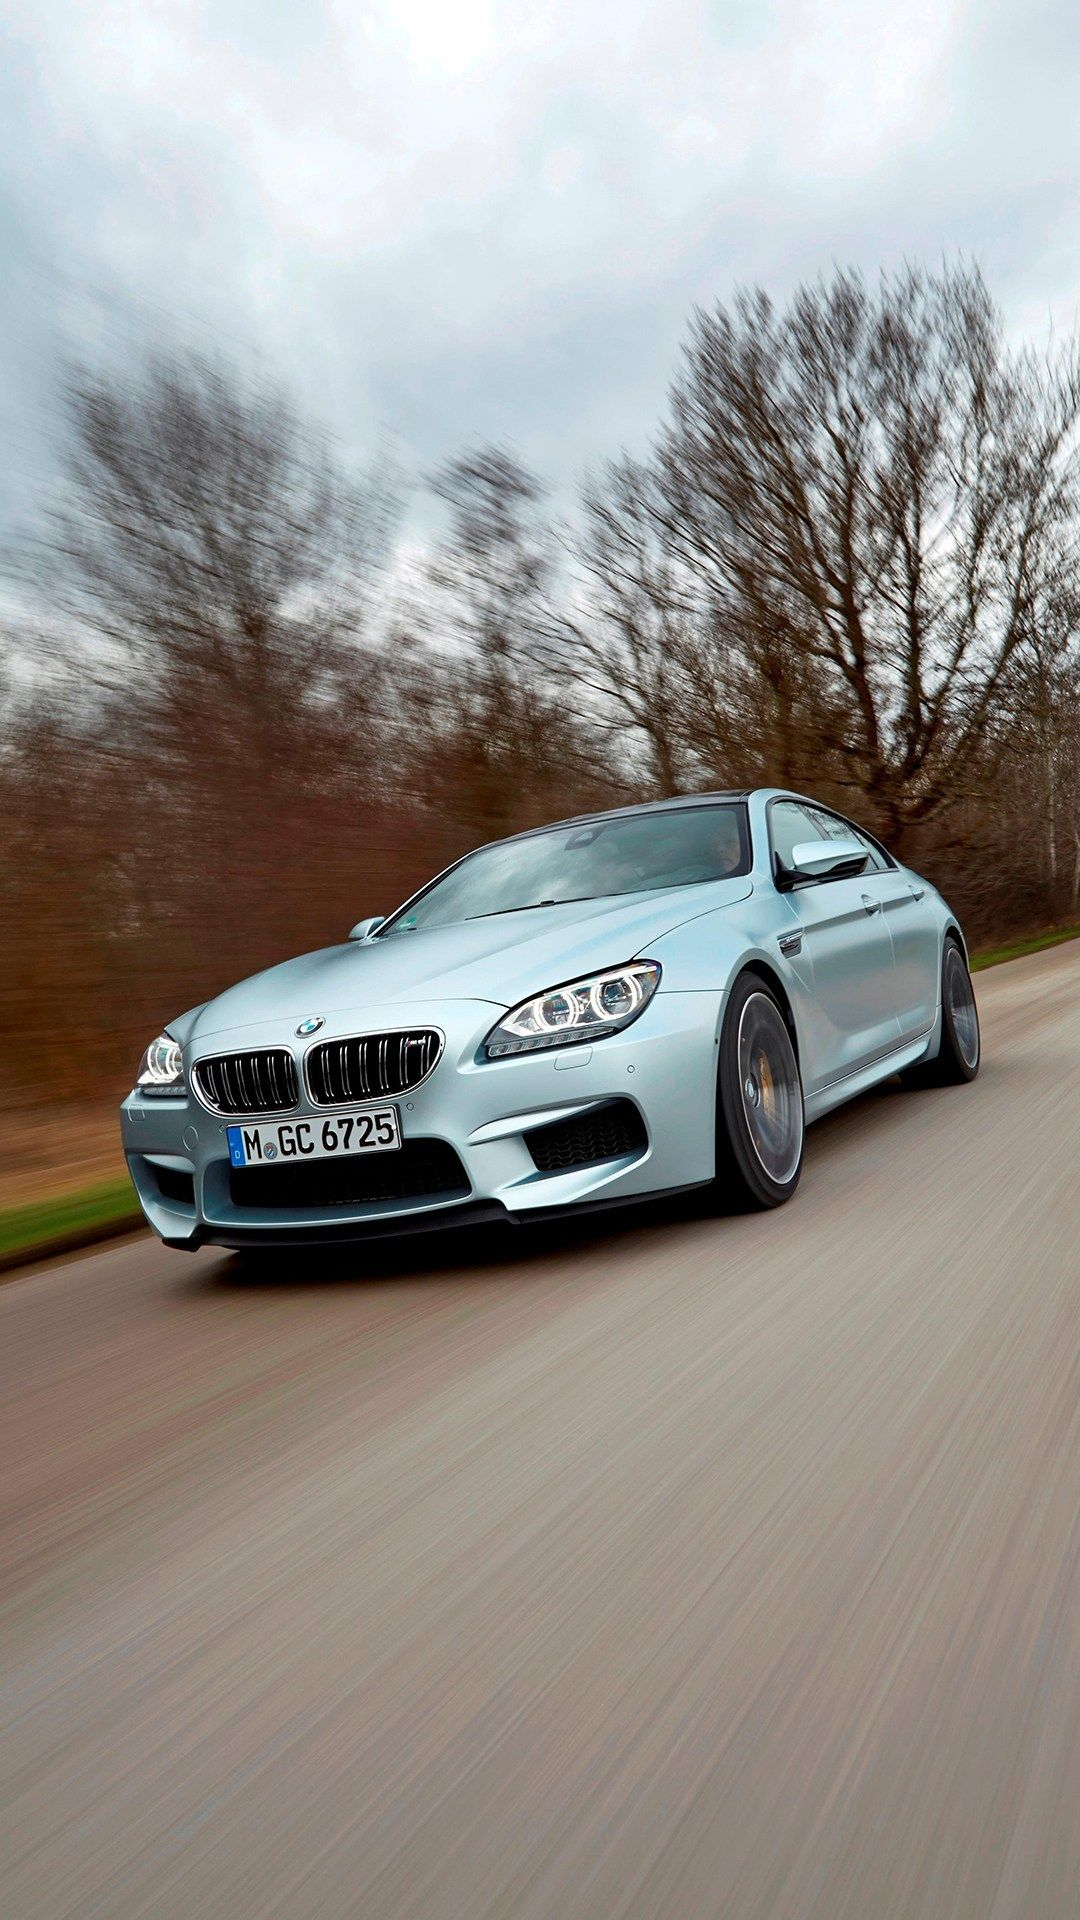 BMW M5 E60 iPhone Wallpapers: 20+ Images, Category